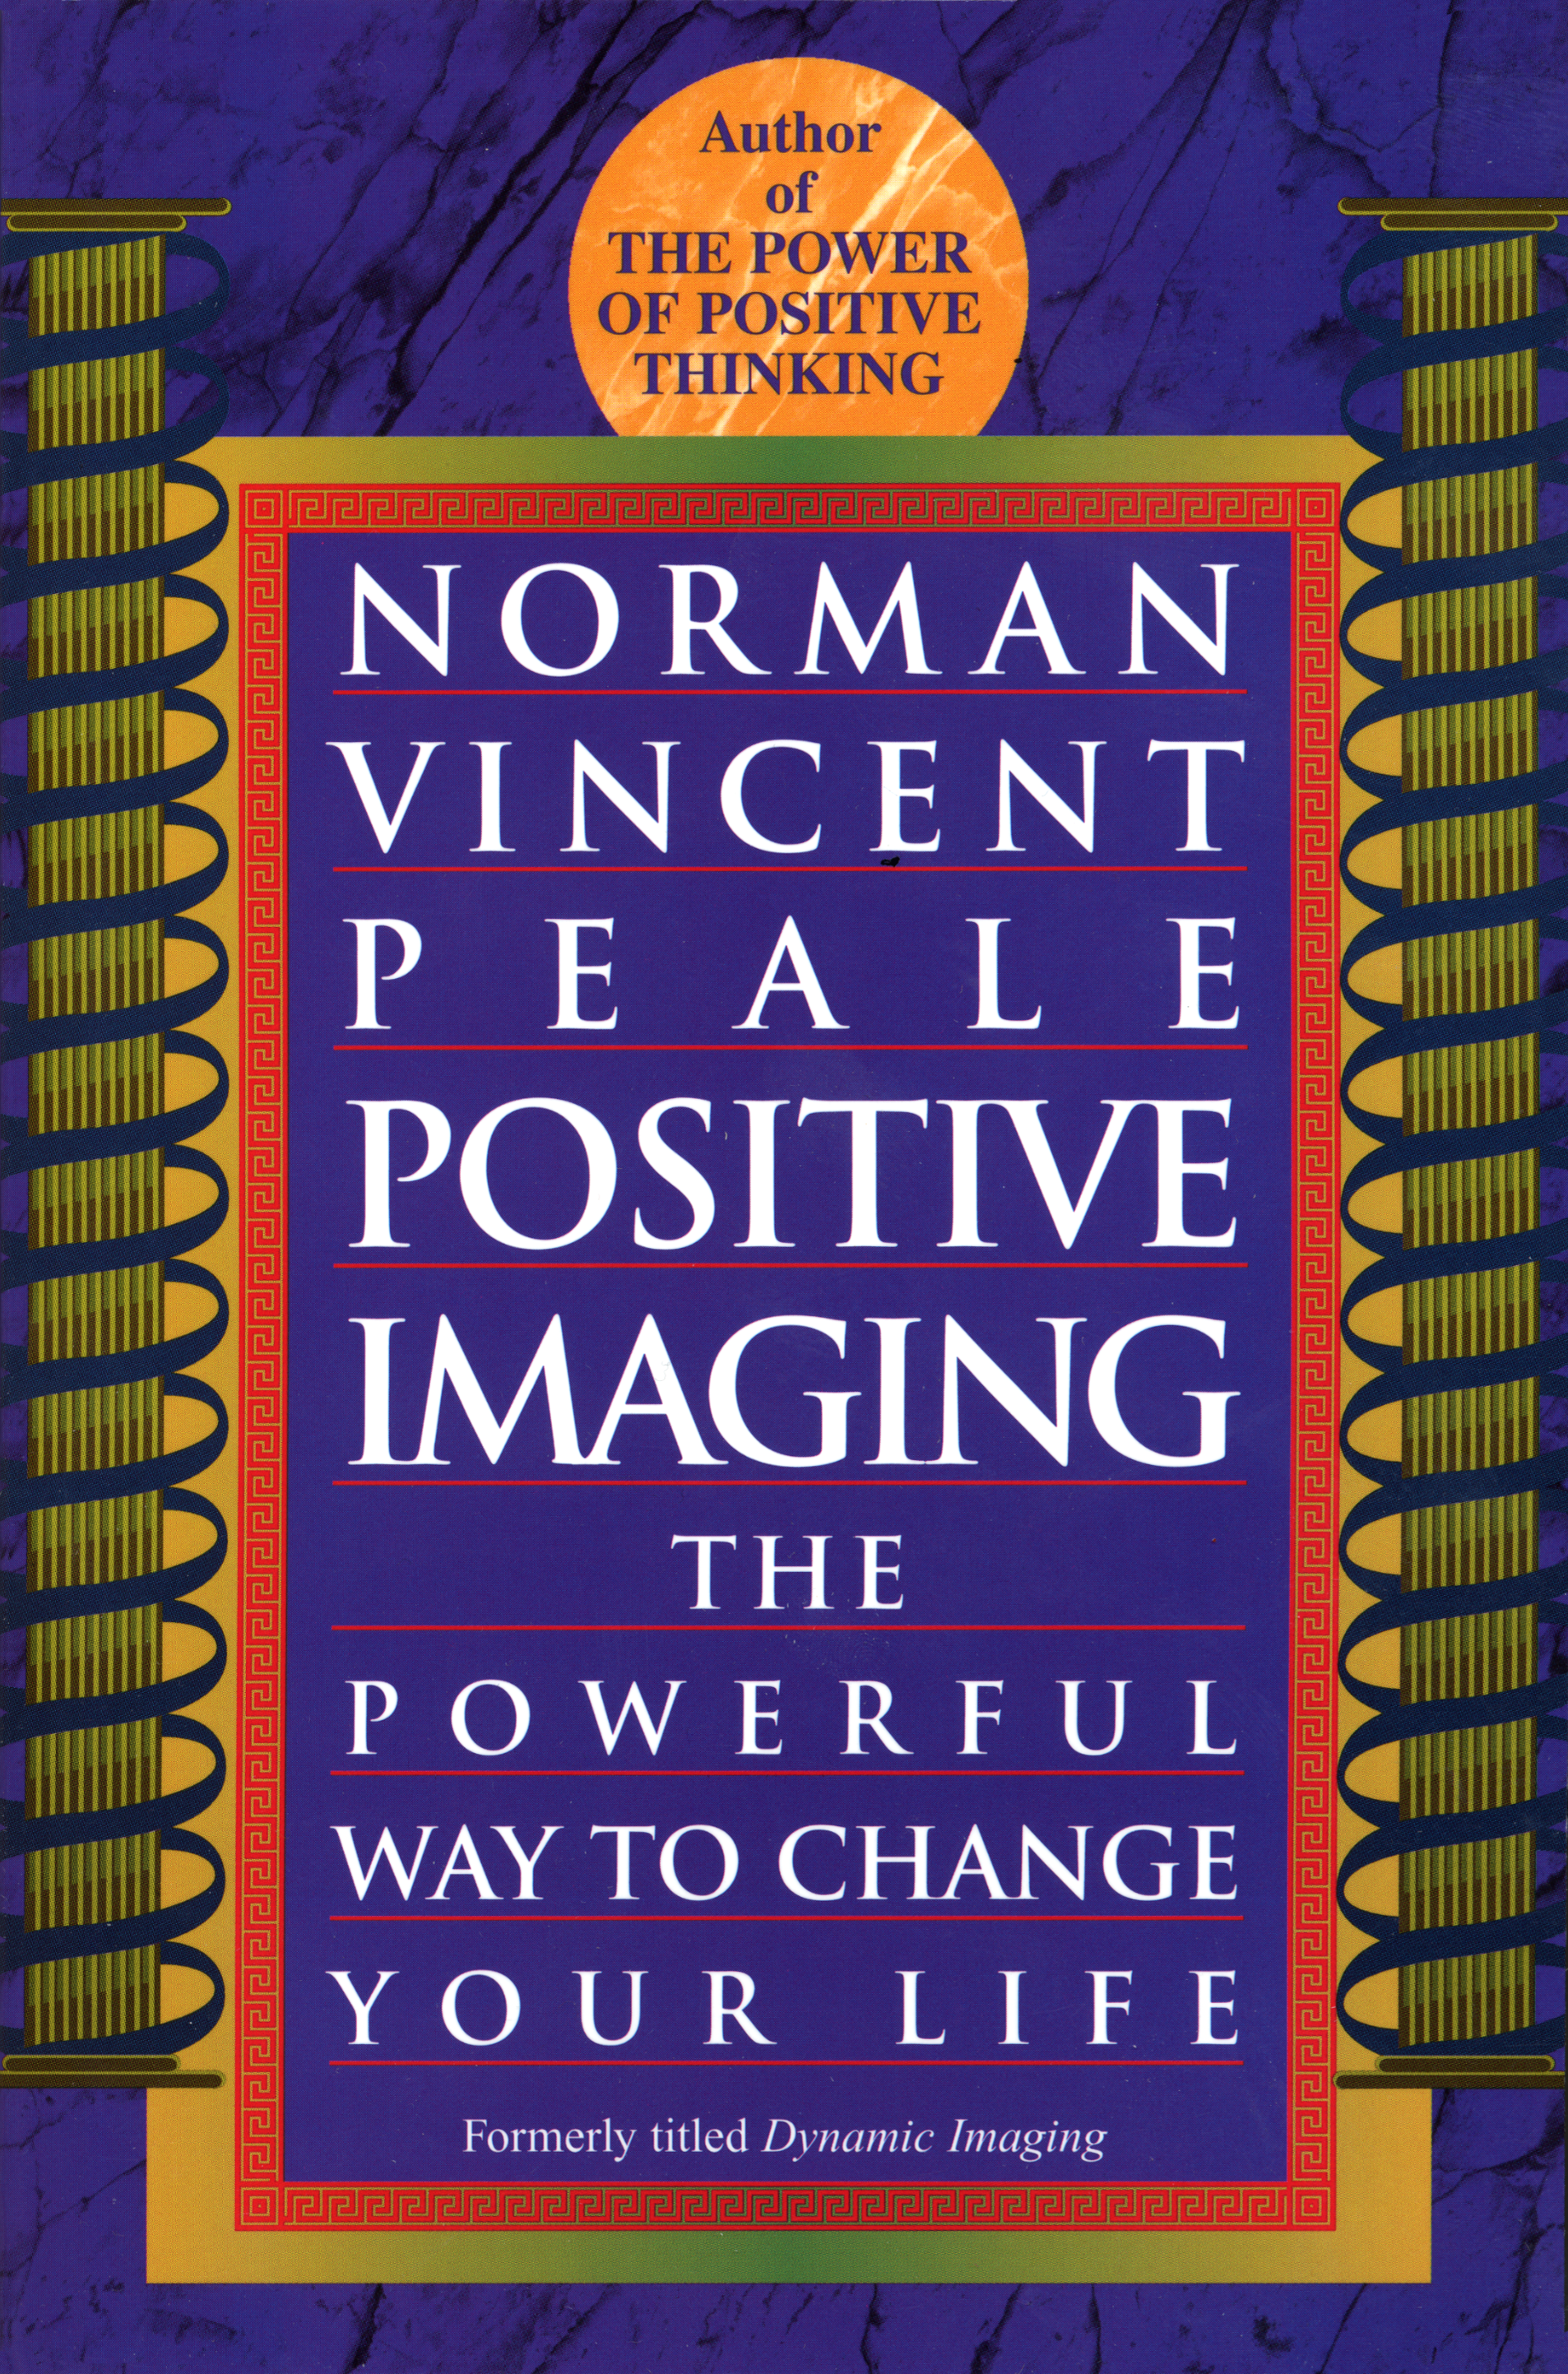 Positive Imaging The Powerful Way to Change Your Life by Norman Vincent Peale